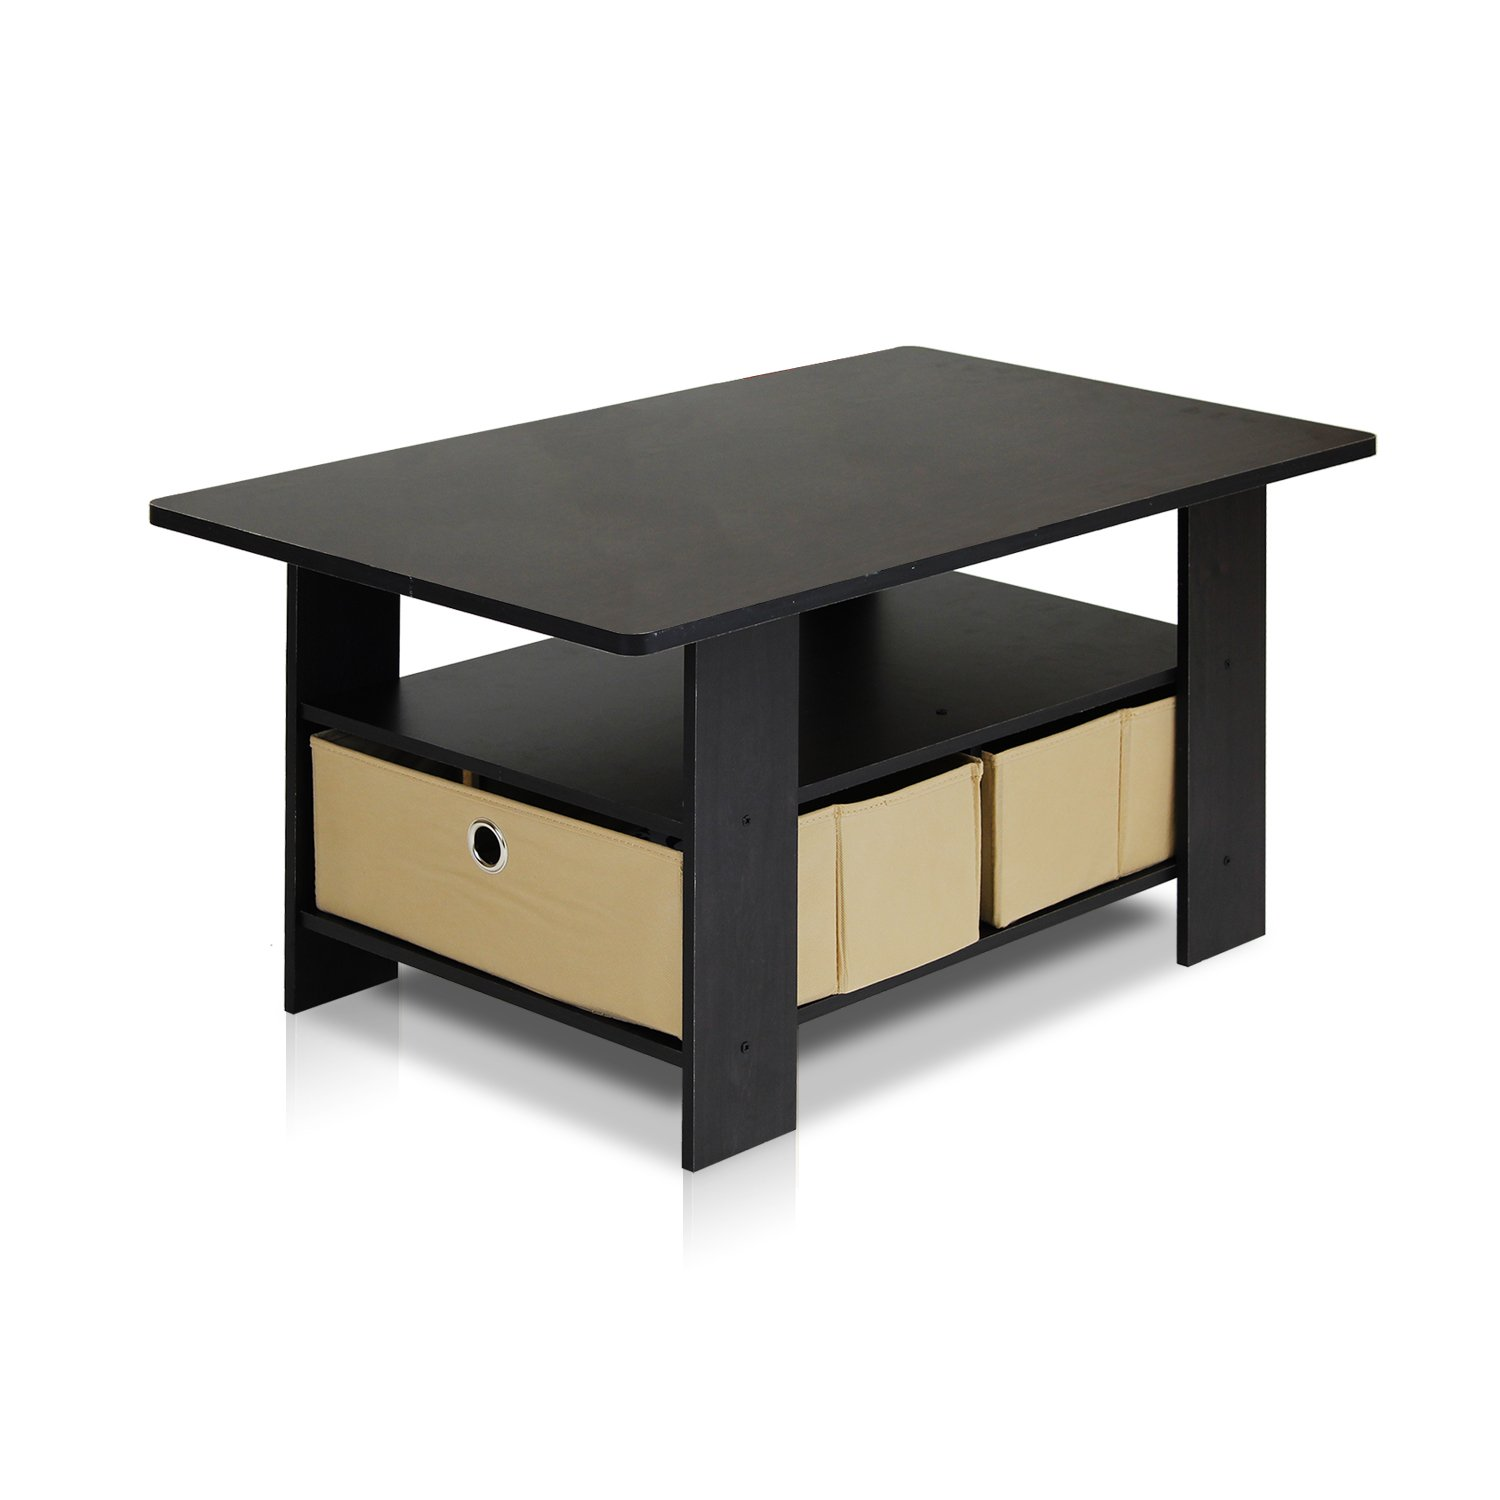 Small coffee table living room furniture dorm desk home Espresso coffee table